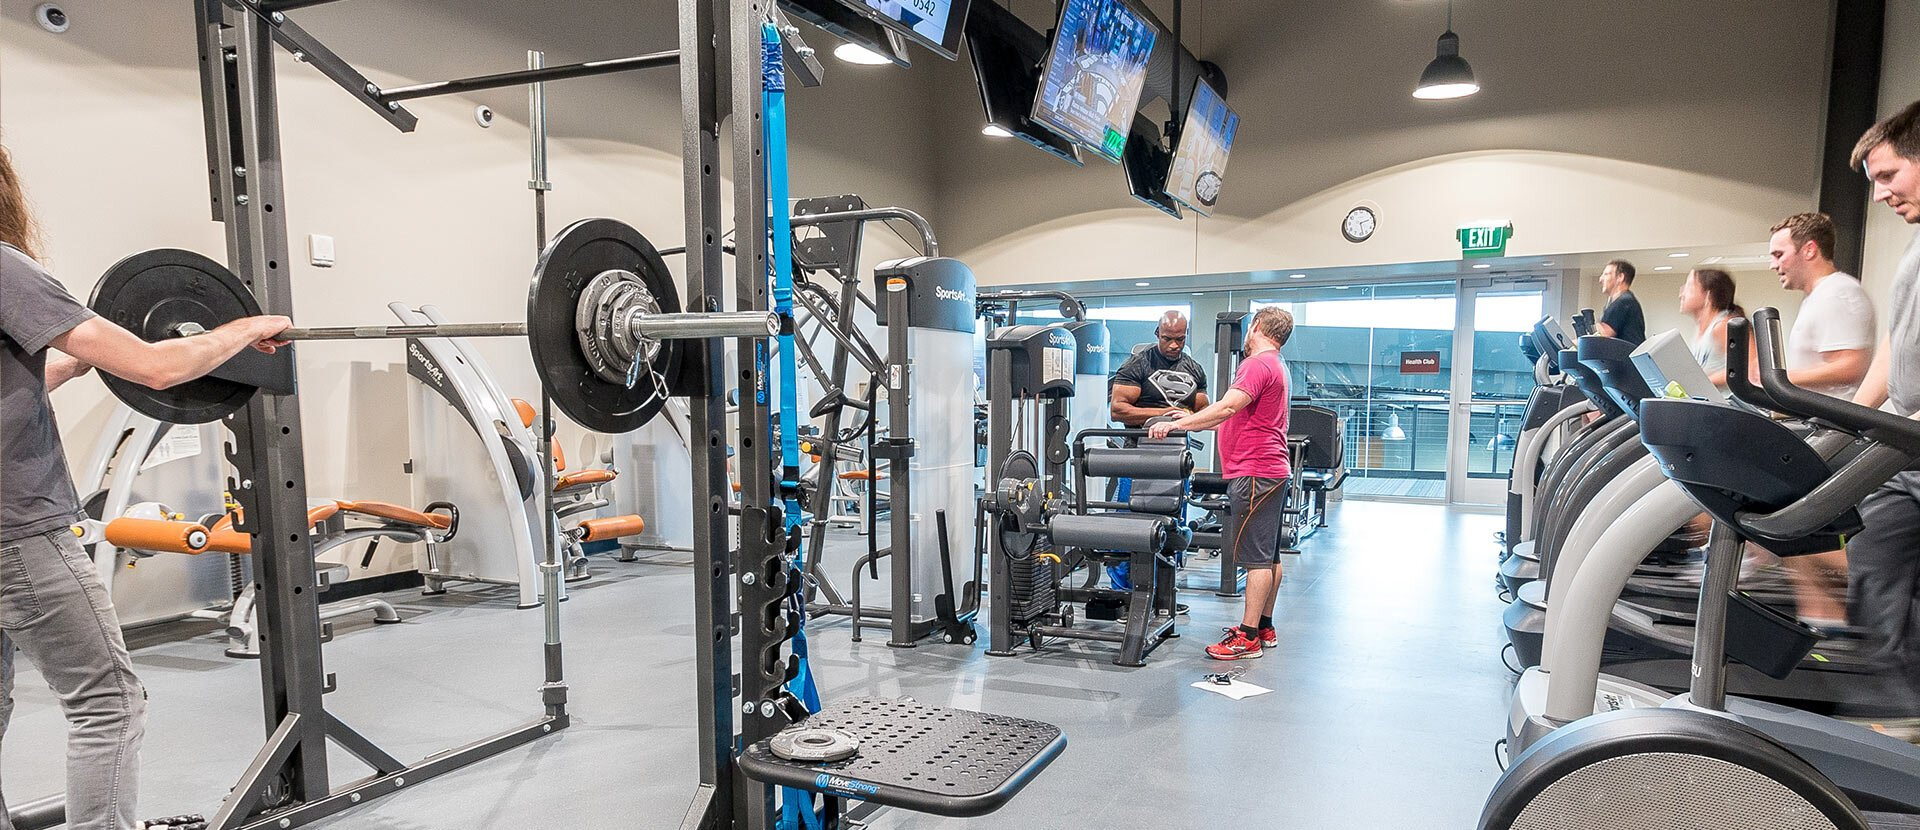 Sweetwater's on-site fitness facility.